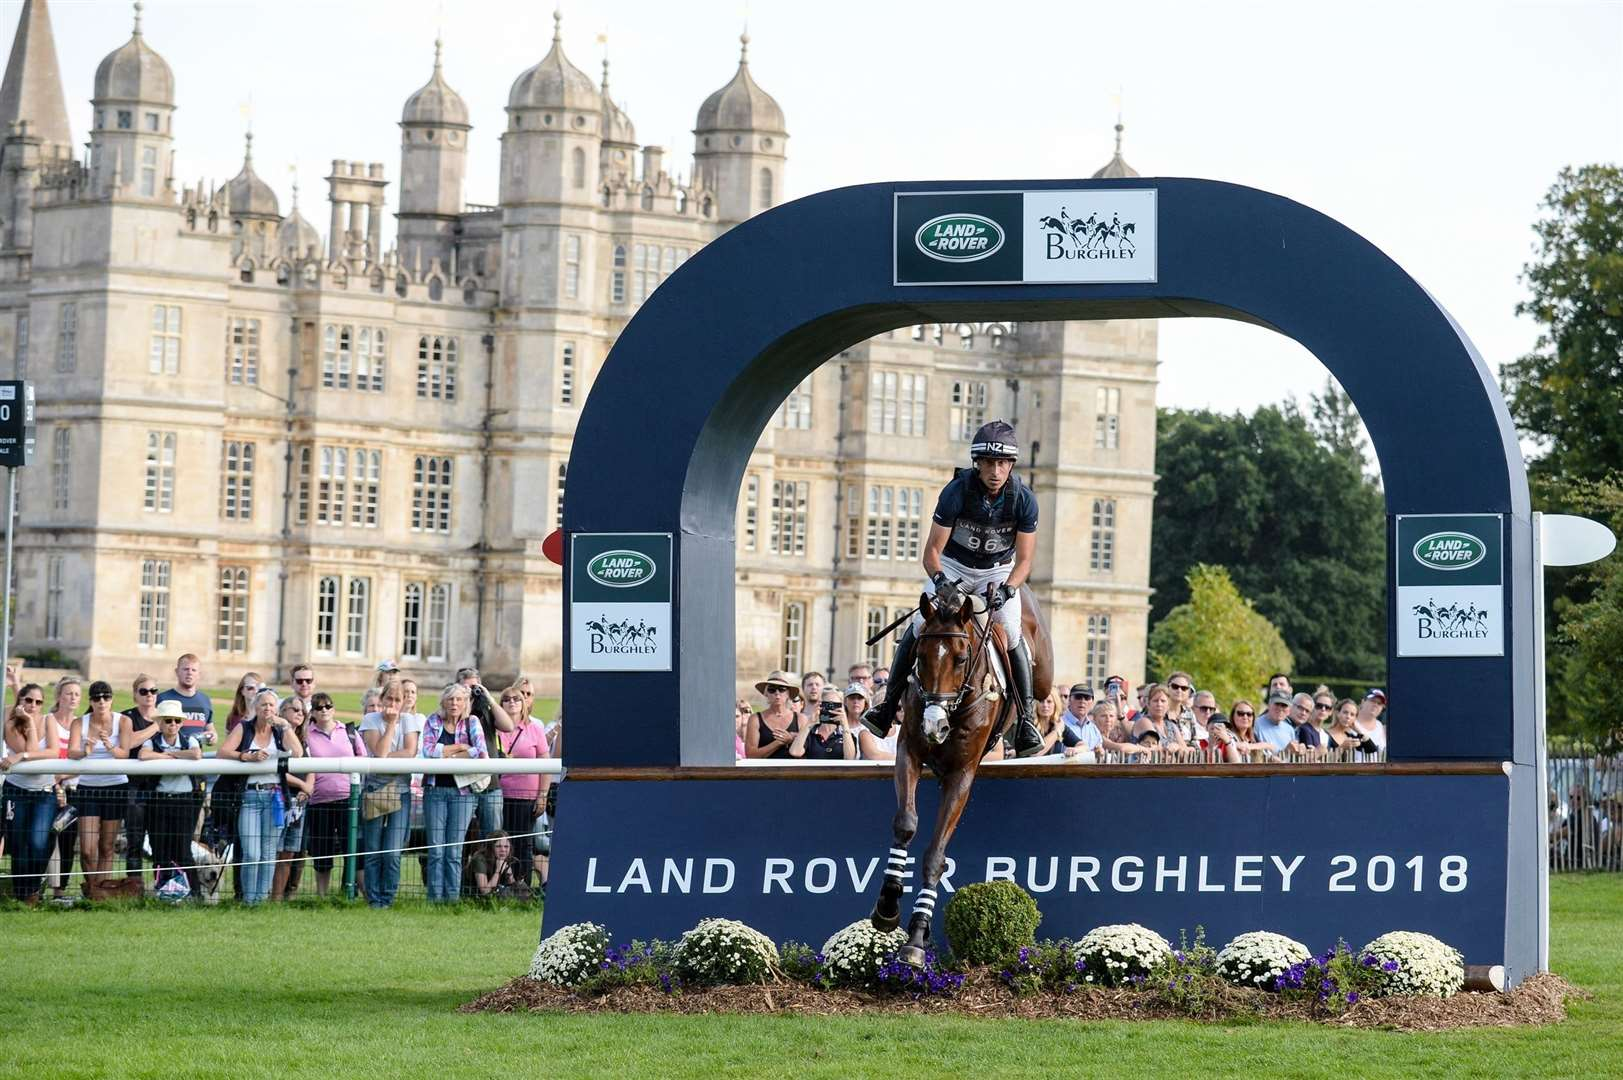 The Burghley Horse Trials in 2018, before the pandemic